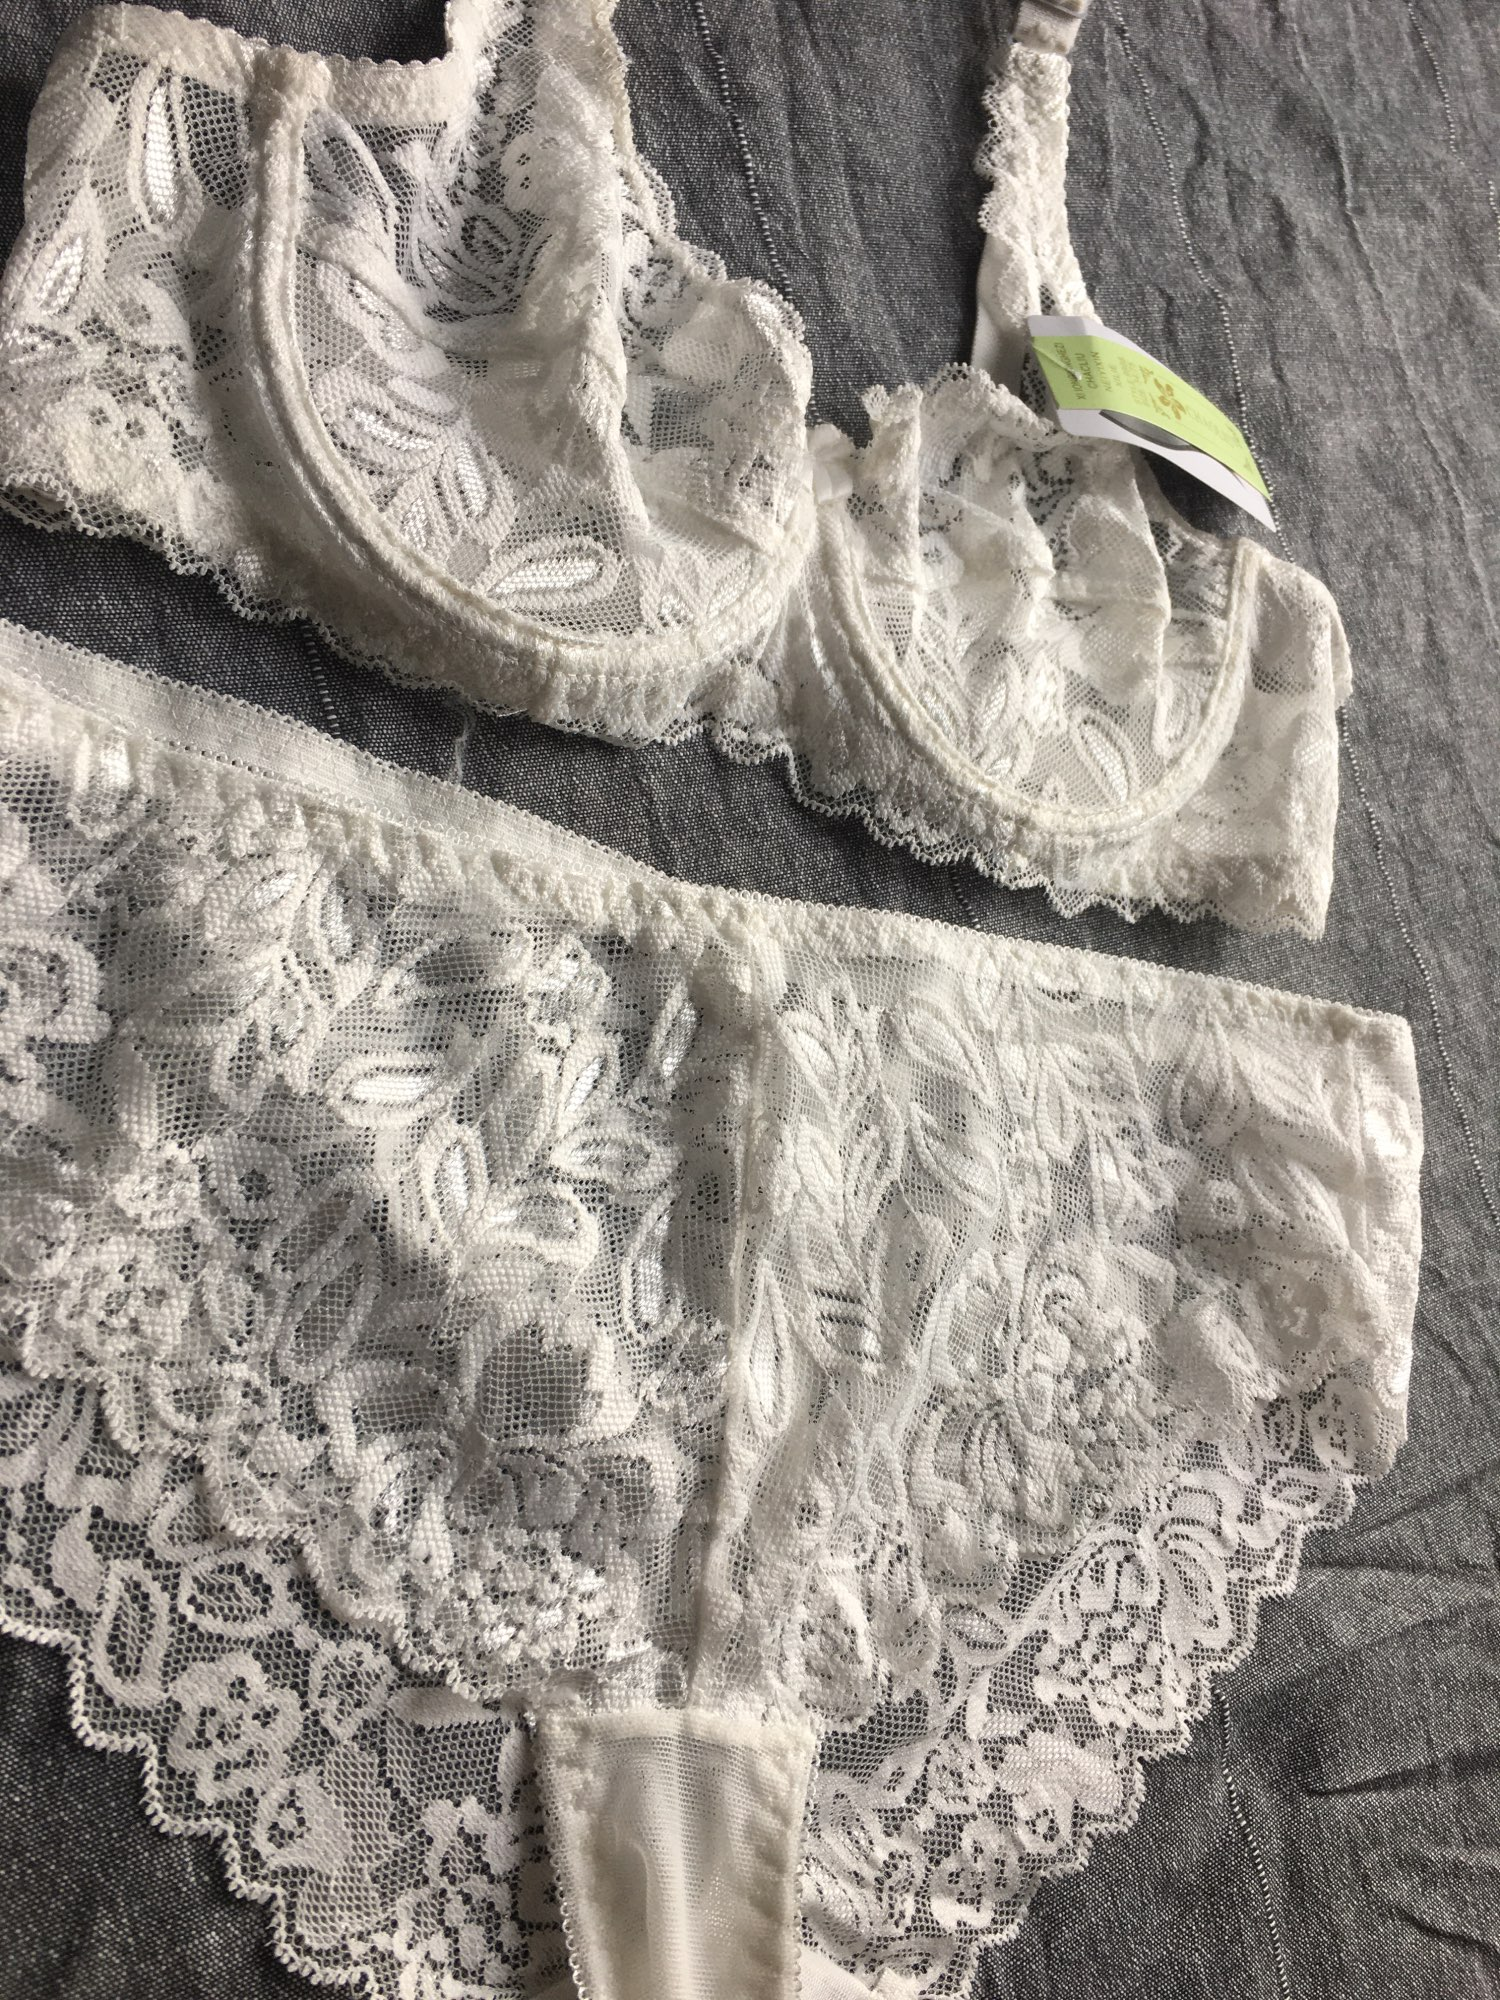 32 40 ABC Cup Intimates Hollow out Lace Bra And Briefs France Sexy Women Ultra thin Underwear Bra Set Sexy Lingerie Bra Up Sofe|underwear bra|bra and briefsbra set - AliExpress